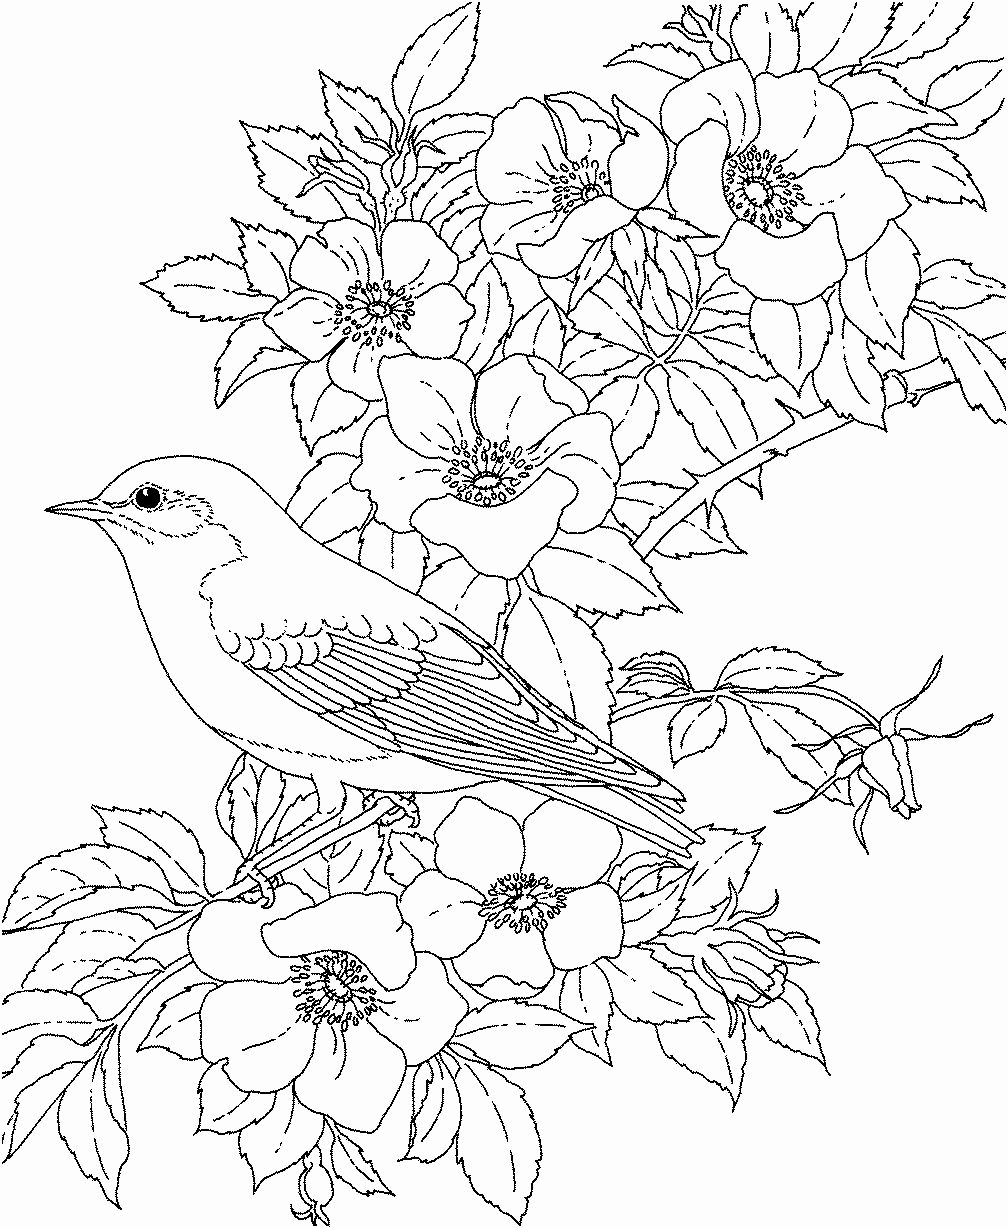 Hard Coloring Pictures Of Animals Beautiful Birds Coloring Pages For Adults In 2020 Bird Coloring Pages Animal Coloring Pages Spring Coloring Pages